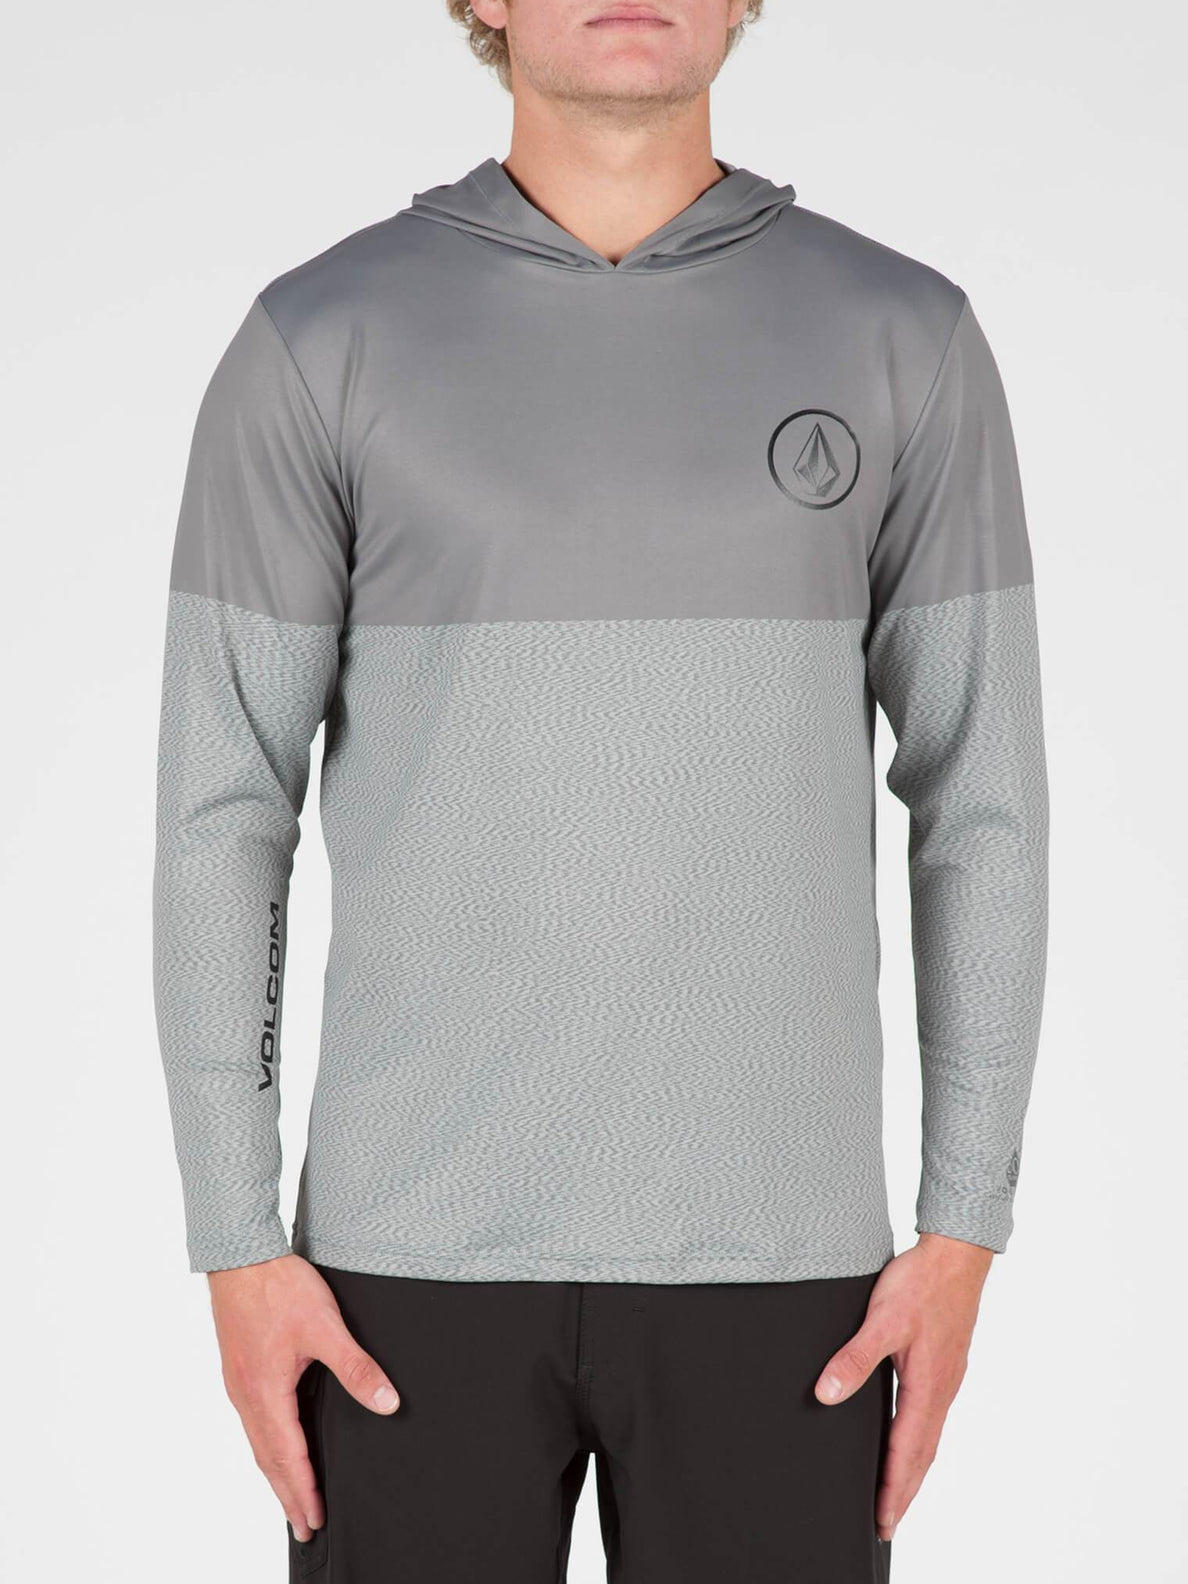 Distortion Block Long Sleeve Surf Shirt In Pewter, Front View